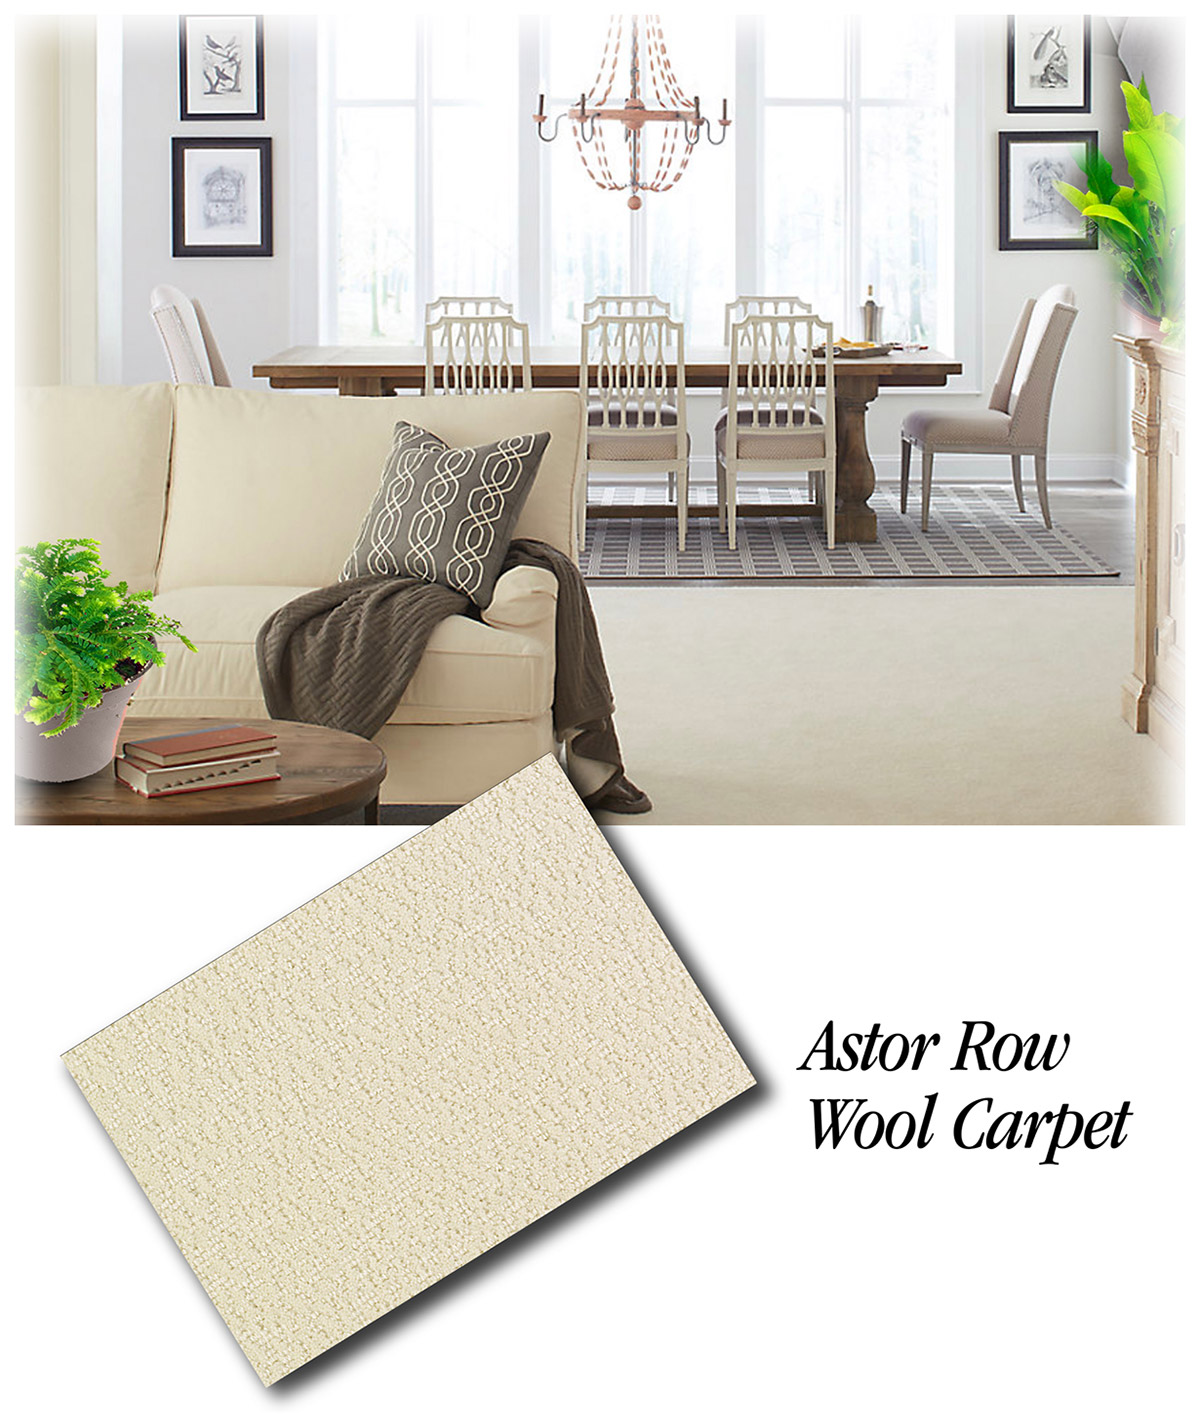 Wver The Occasion Decor Or Climate Karastan S Astor Row Wool Carpeting Is